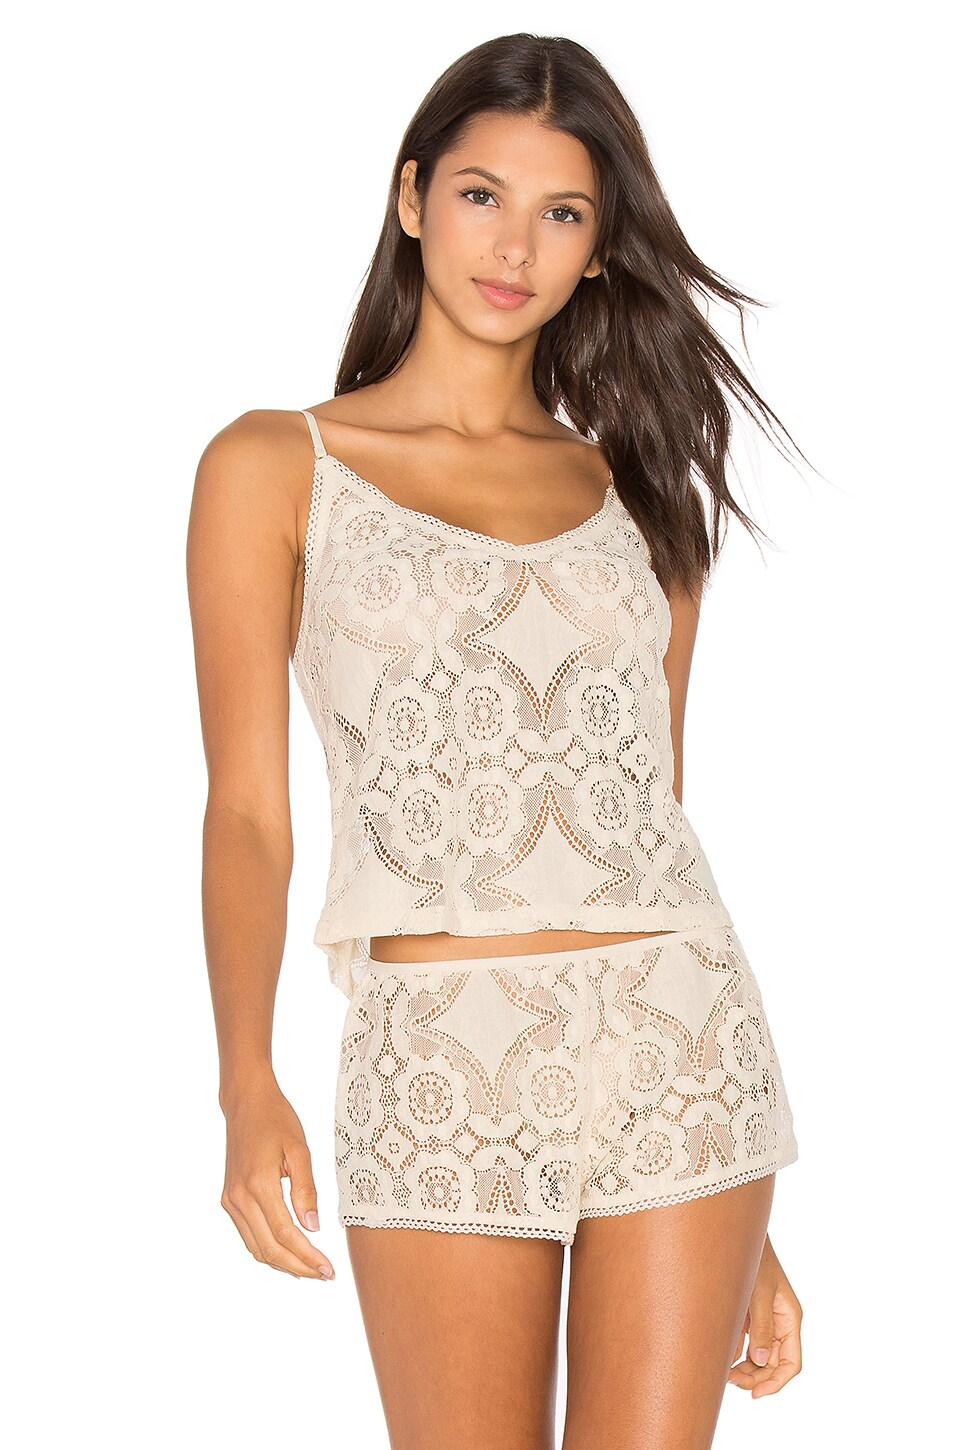 Mosaic Lace Cami by Only Hearts